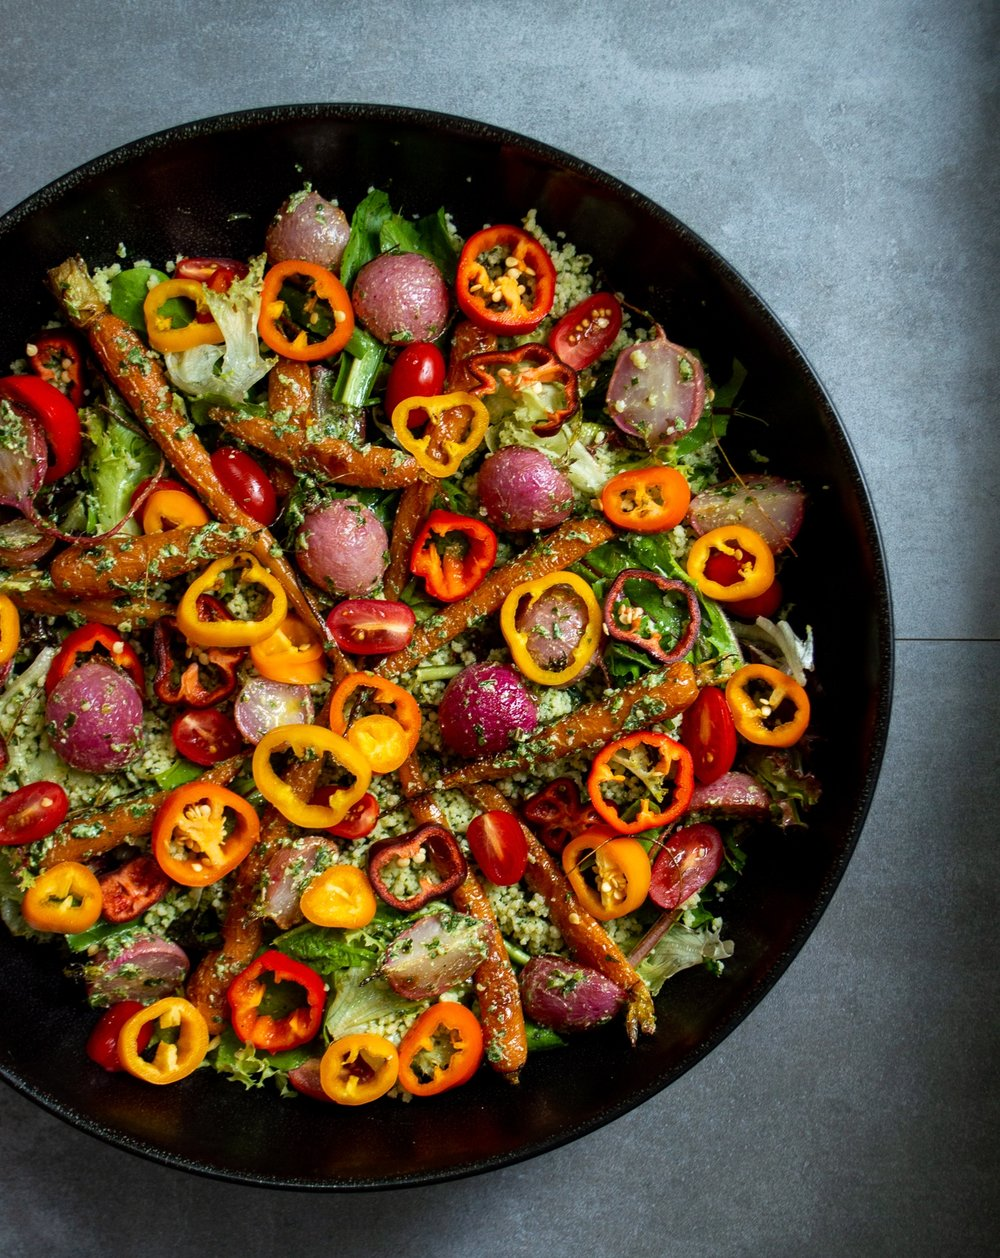 salad with party leftovers, roasted radish and carrots, herby cous cous